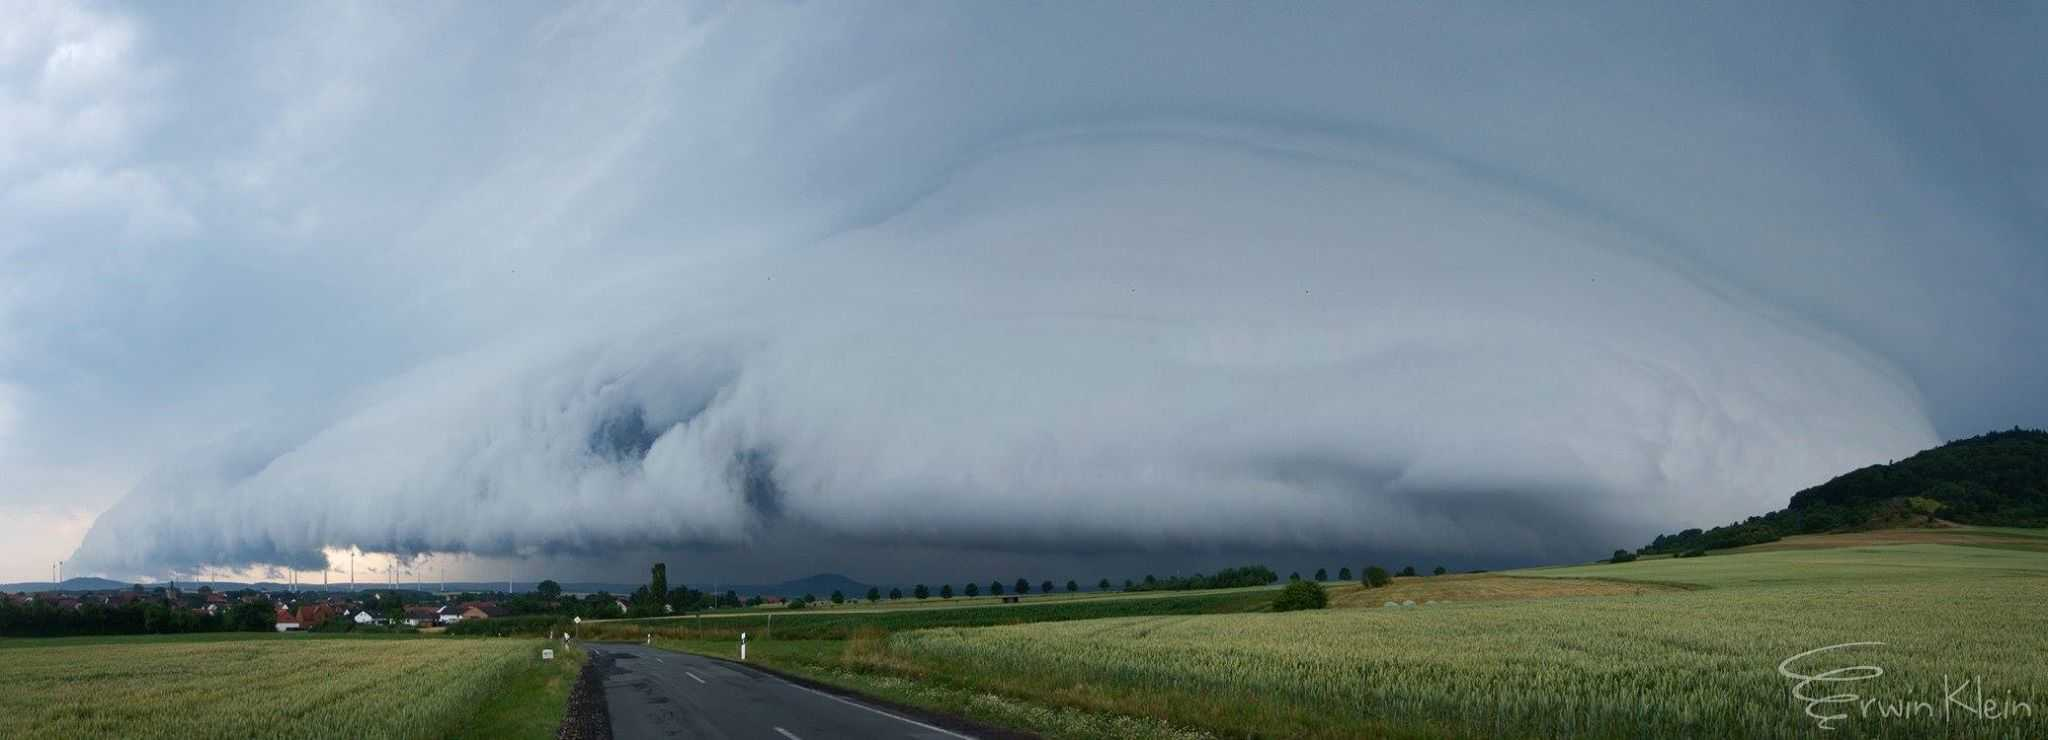 'The Beast'. Supercell near Kassel(Germany) today (July 5, 2015)